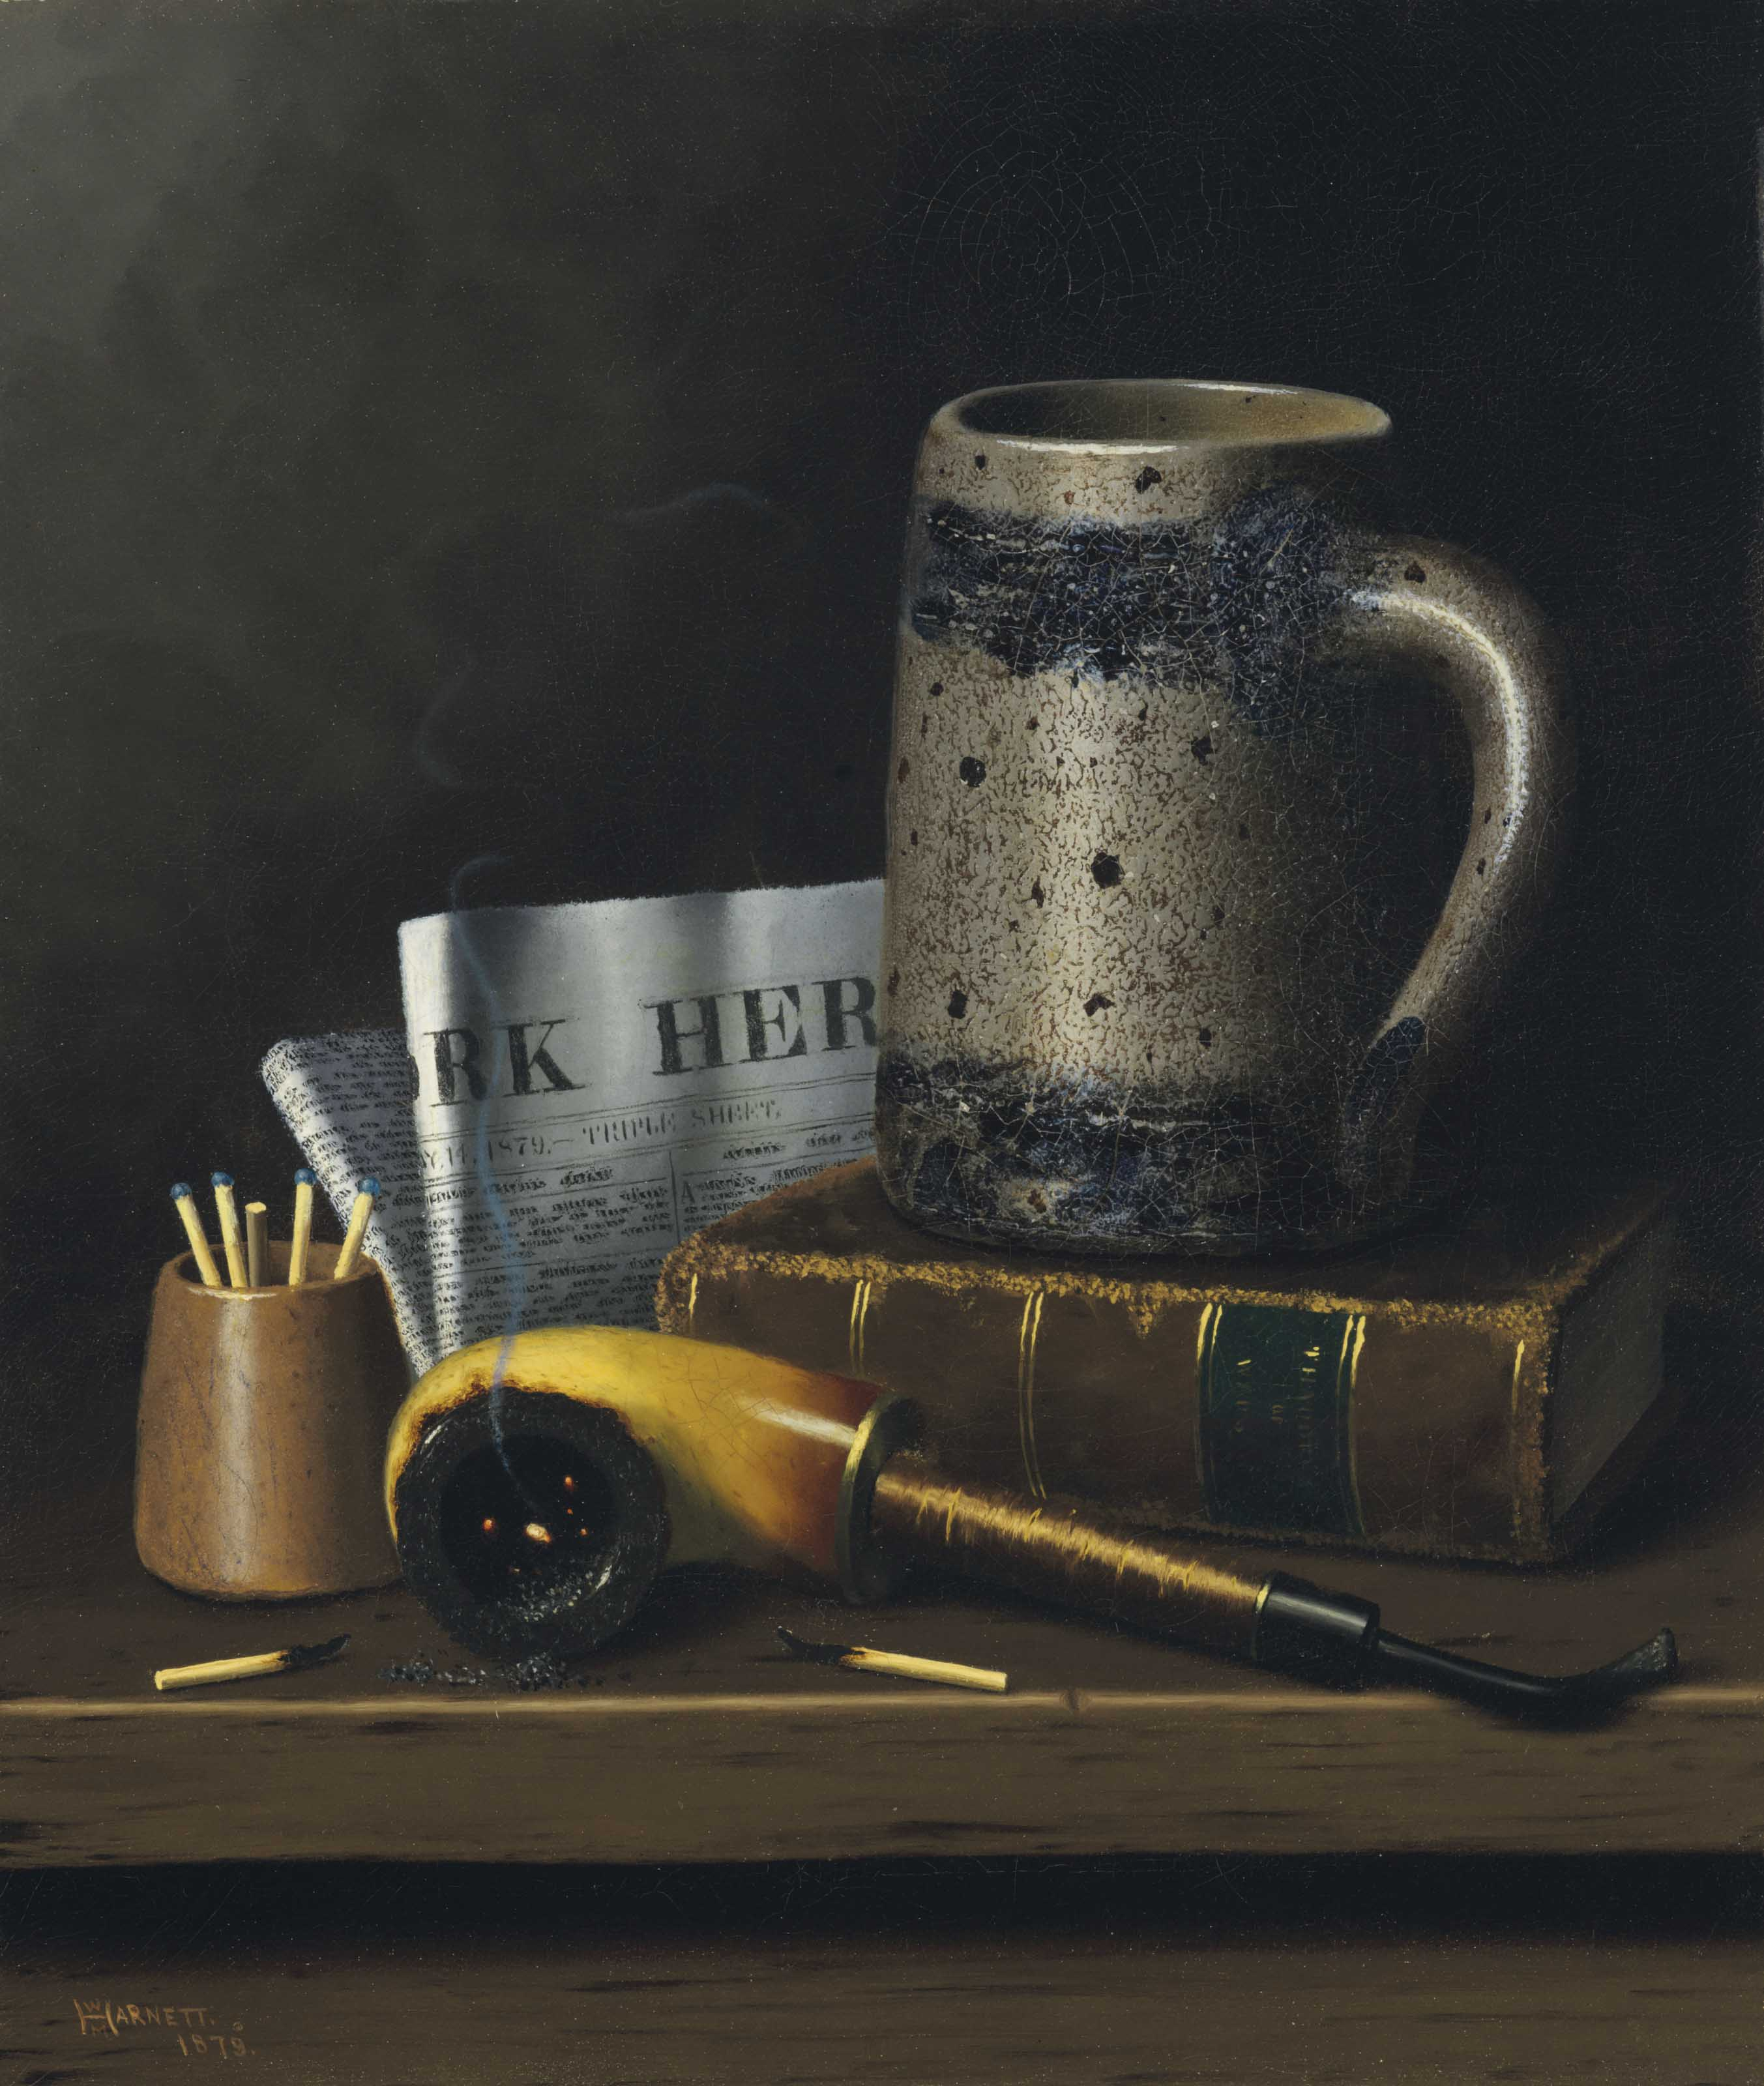 Still Life with New York Herald, Beer Stein and Pipe